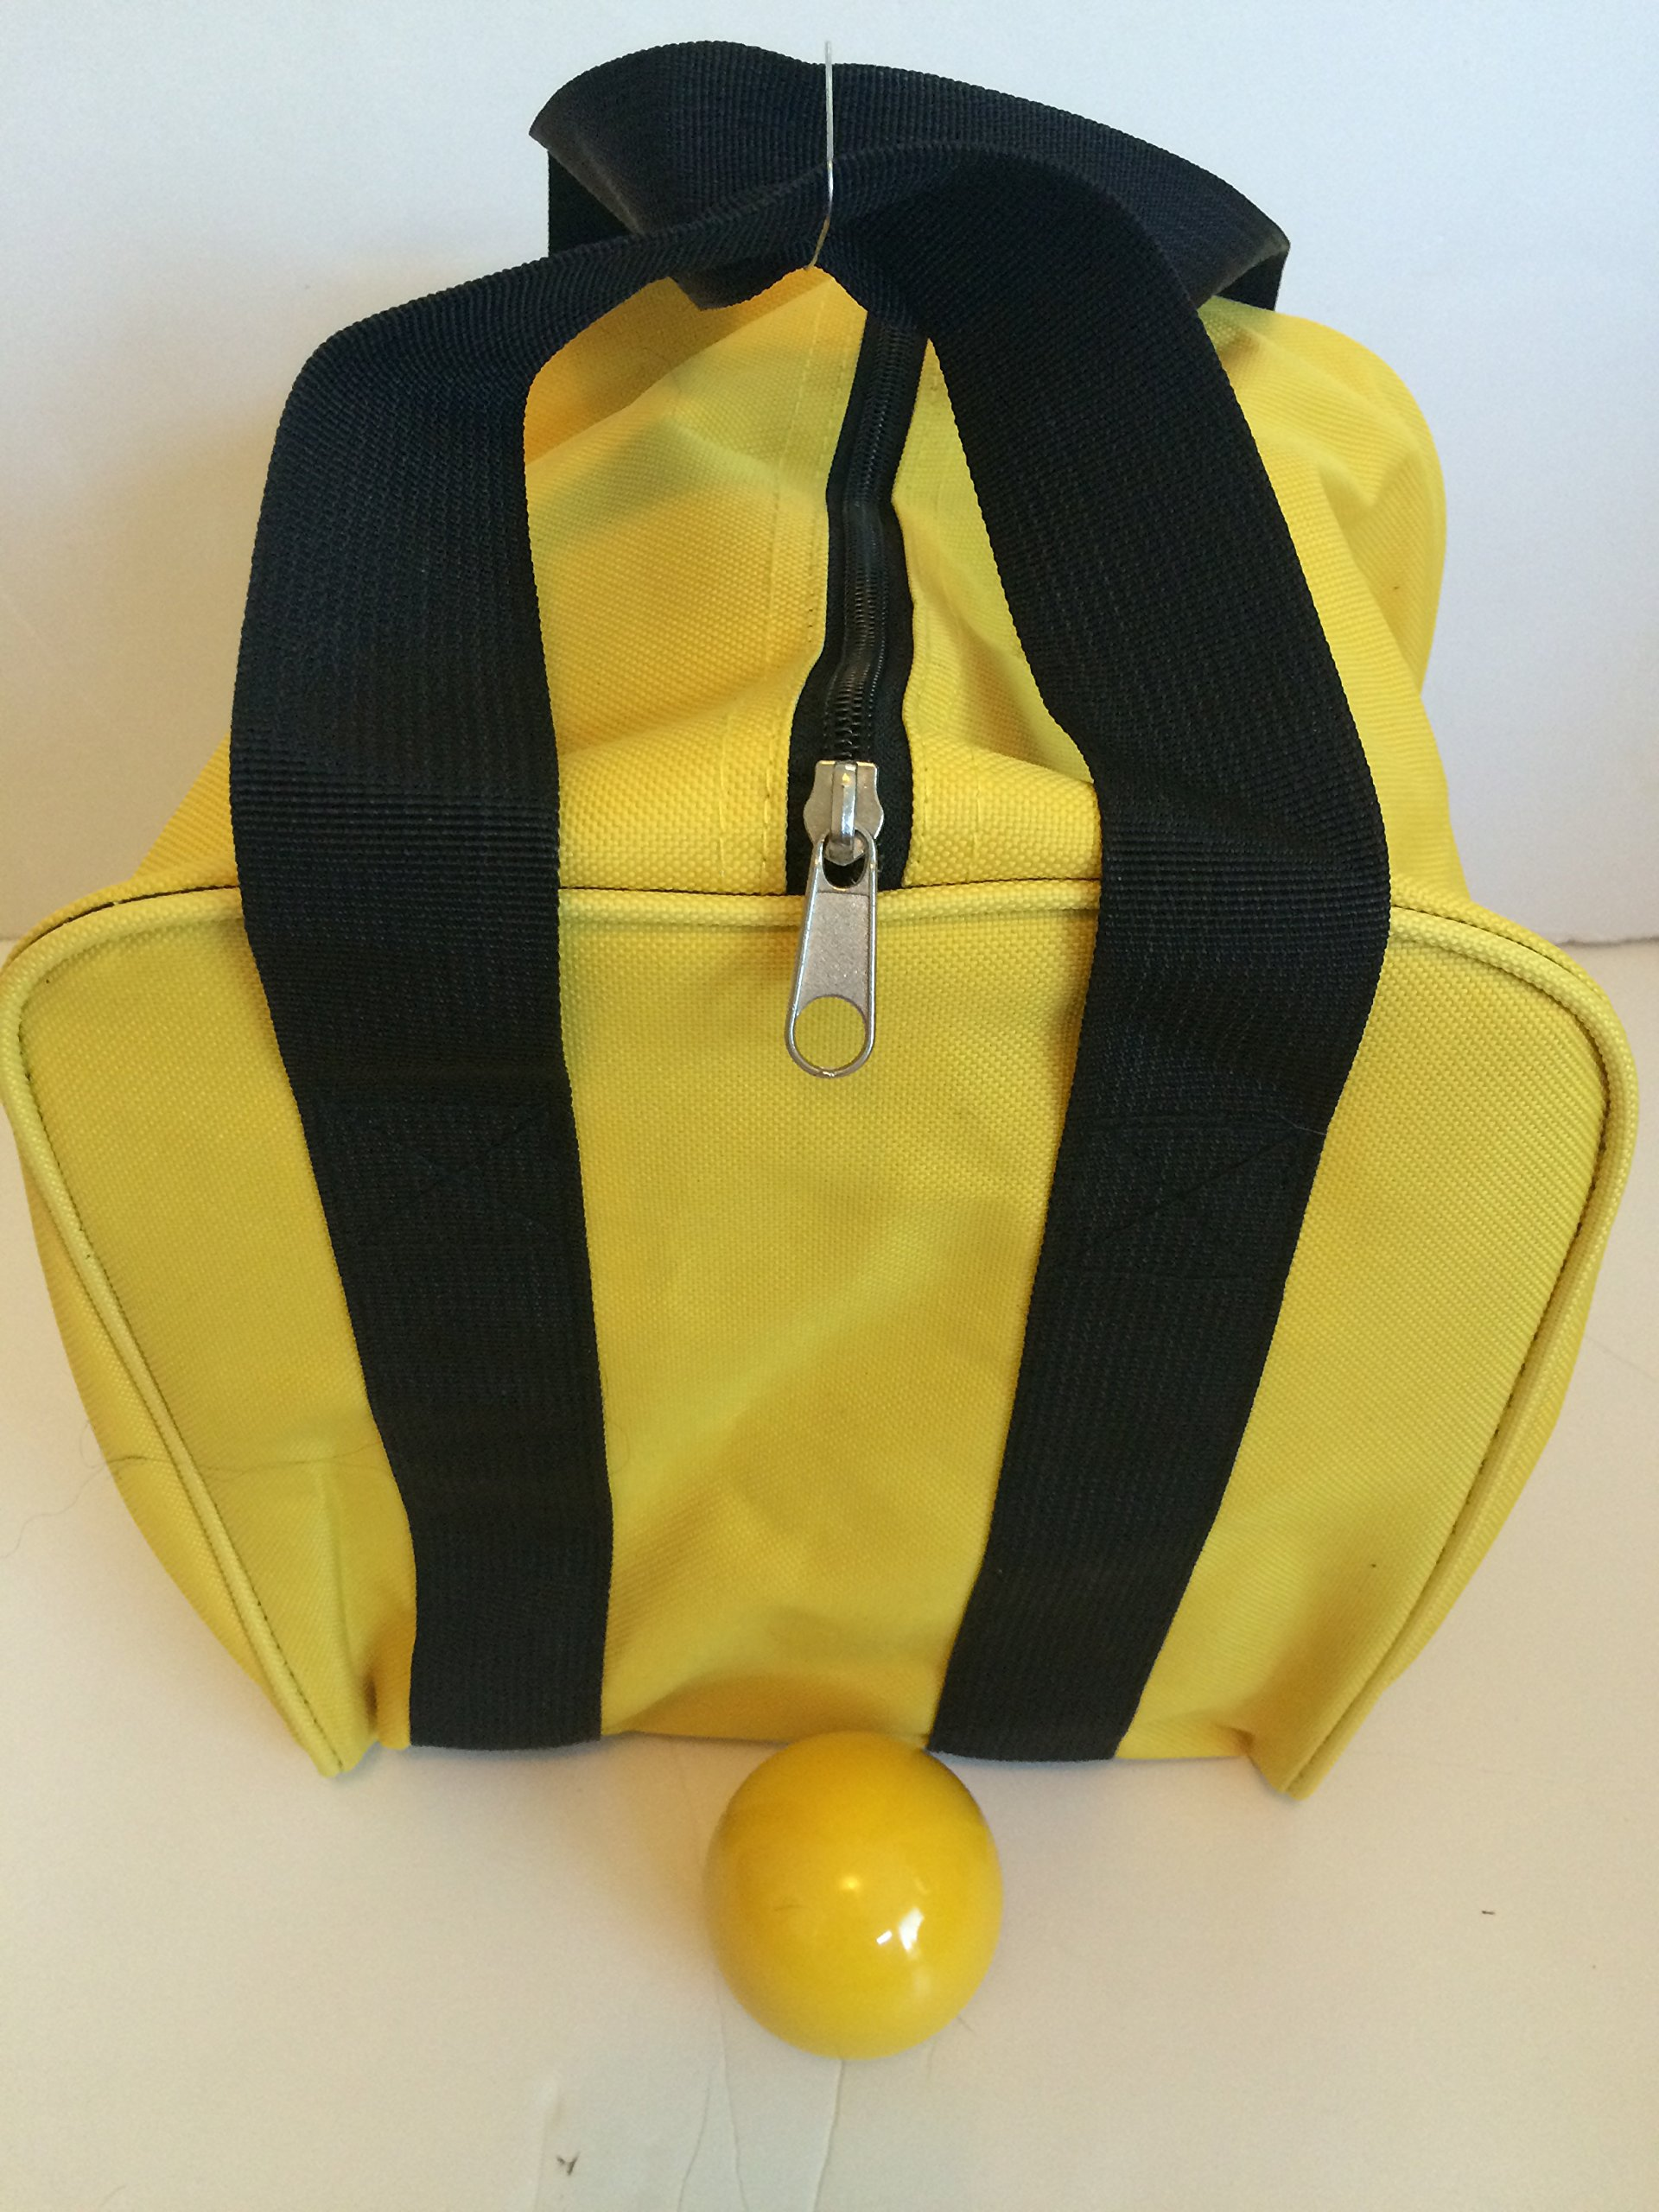 Unique Bocce Accessories Package - Extra Heavy Duty Nylon Bocce Bag (Yellow with Black Handles) and yellow pallina by BuyBocceBalls